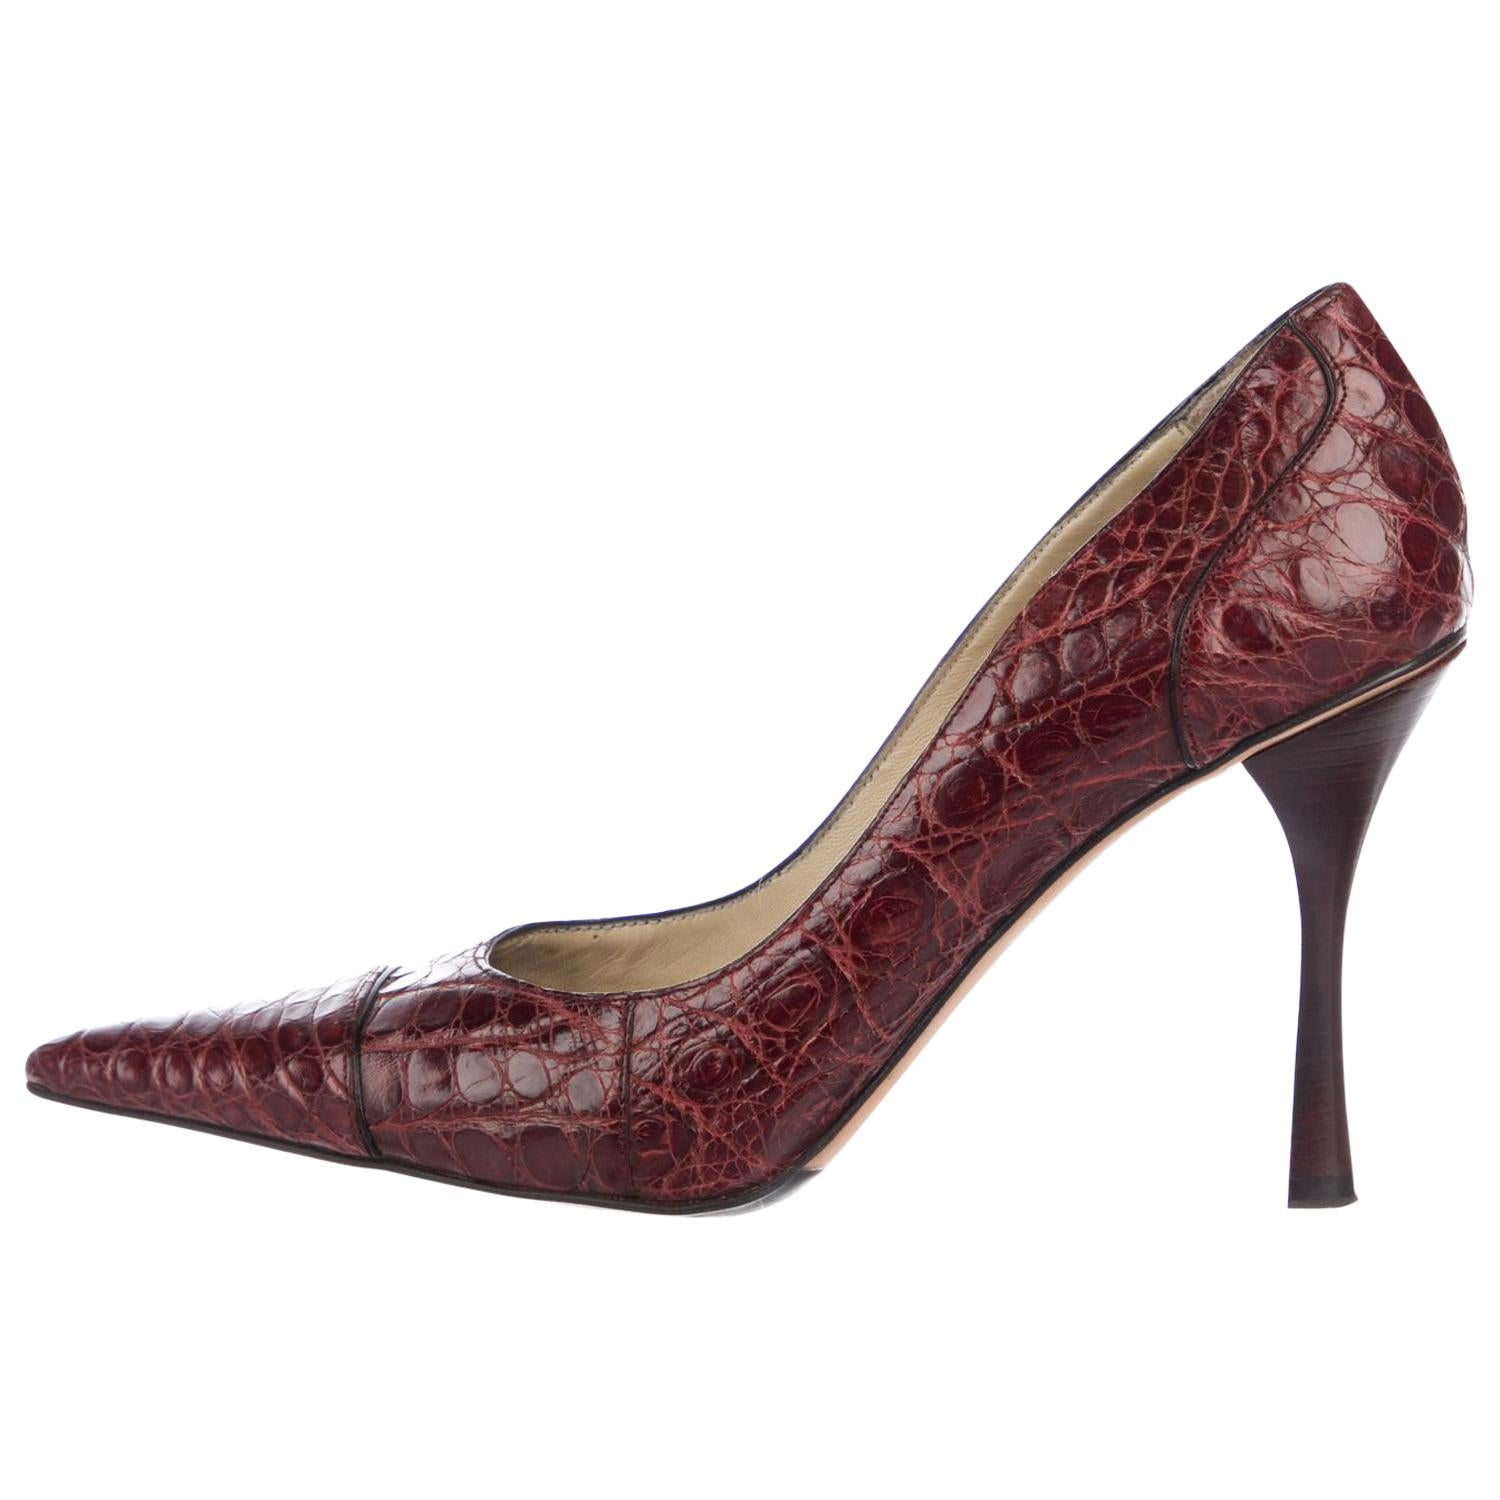 Tom Ford for Gucci F/W 2002 Collection Alligator Wine Color Shoes Pumps 39.5 C